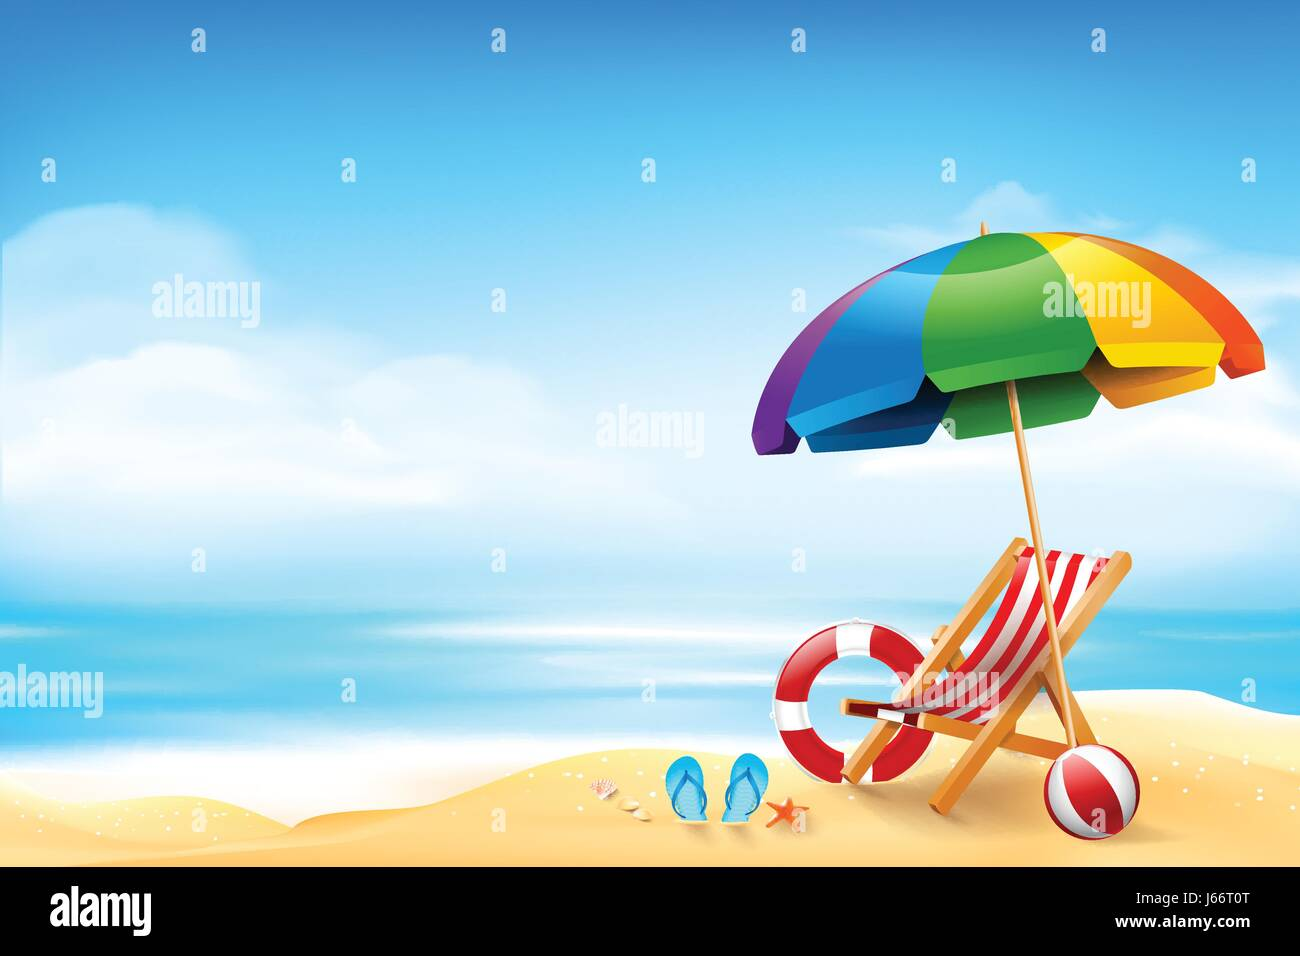 The Chair Ball Starfish And Life Ring On The Beach Over Blur Blue Sky  Background For Summer Vacation Concept Vector Illustration Eps10